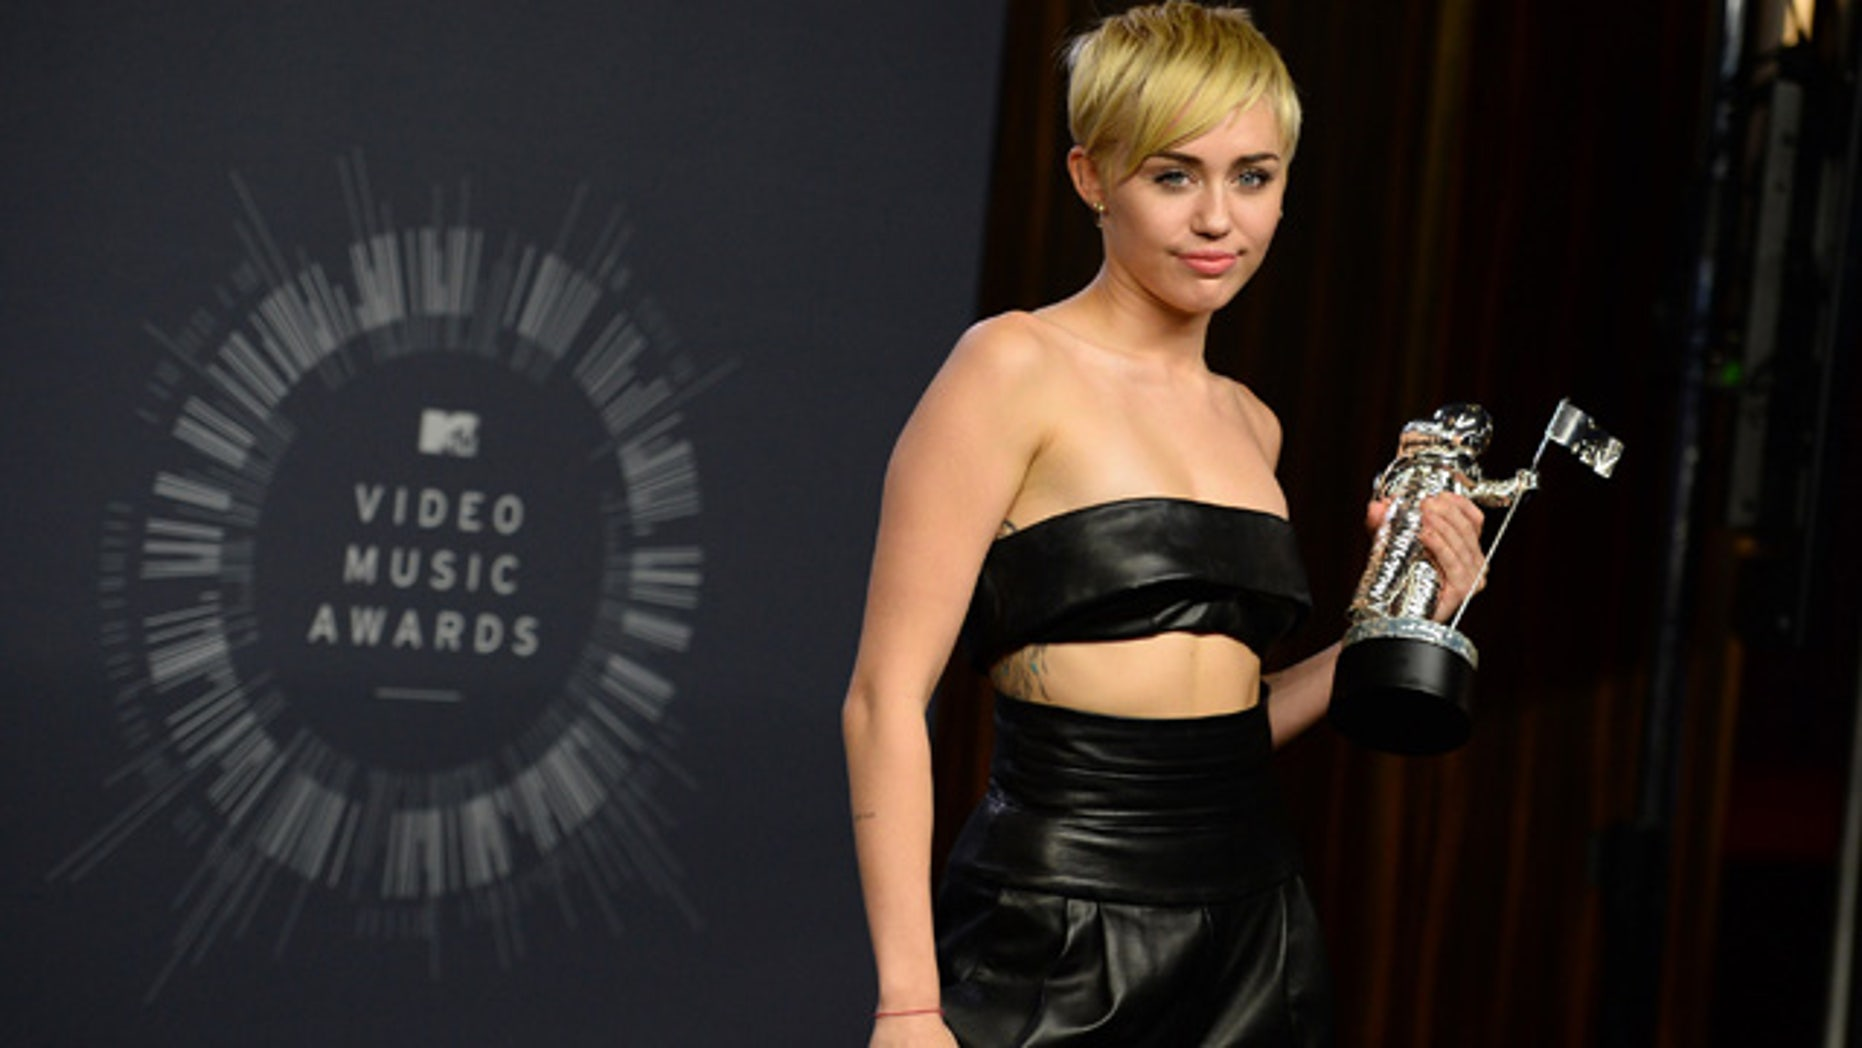 August 24, 2014: Miley Cyrus poses with the award for Video of the Year in the press room at the MTV Video Music Awards at The Forum in Inglewood, Calif. (Photo by Jordan Strauss/Invision/AP)